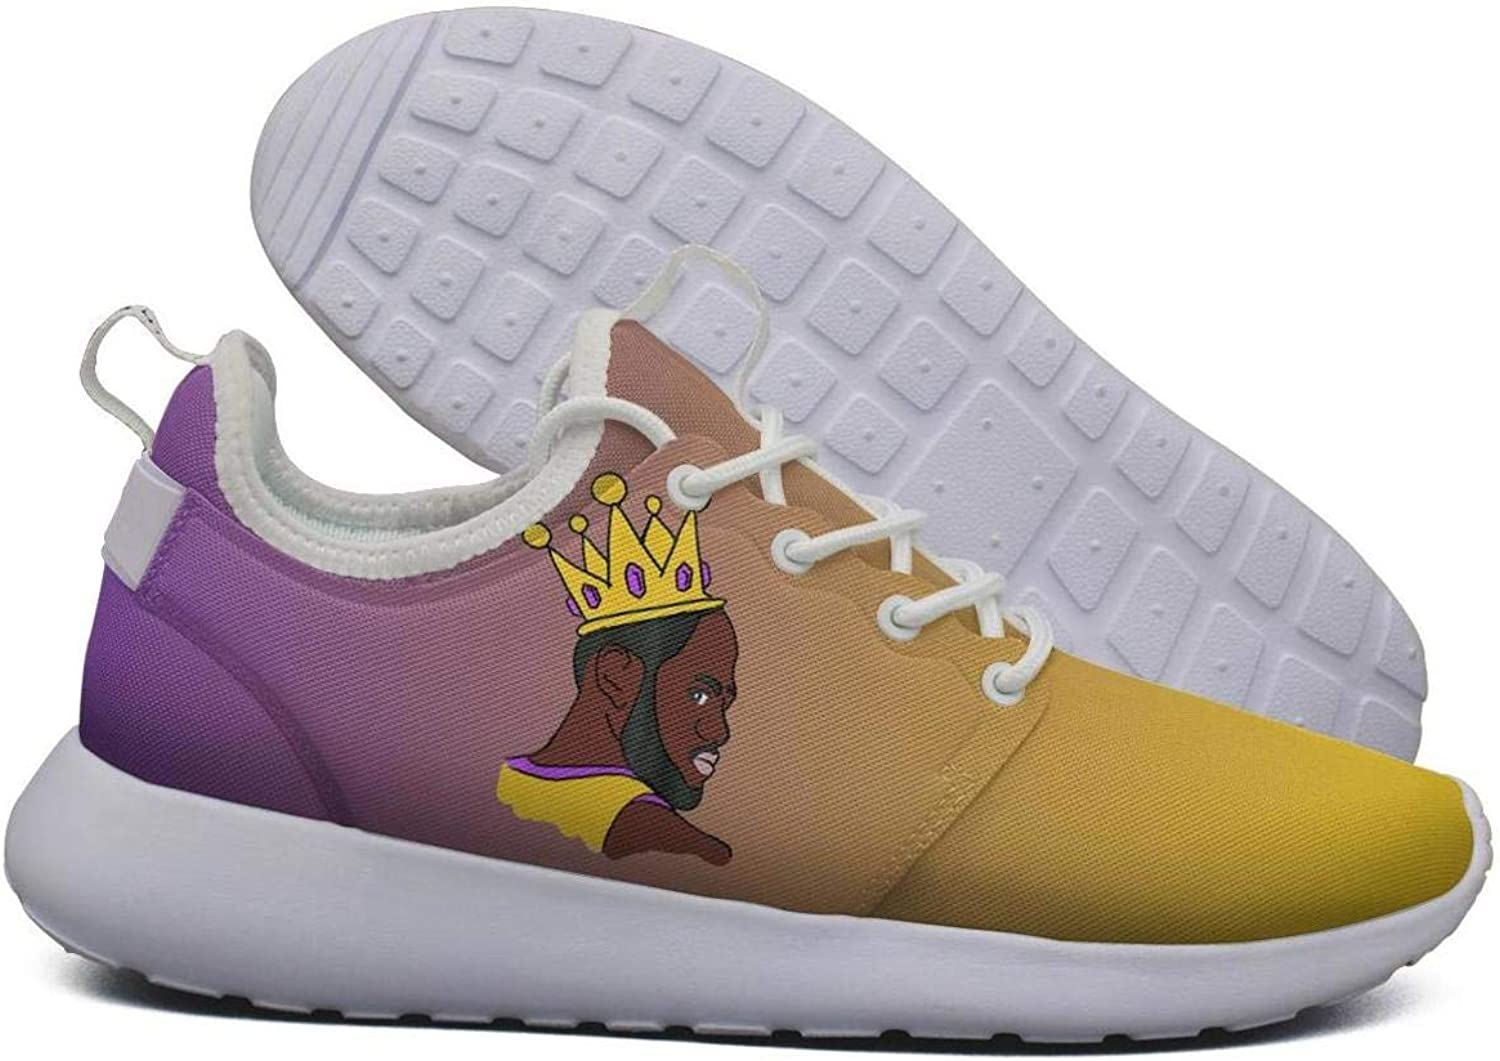 Womens Roshe Two Lightweight Yellow_labron_Crown_Basketball Soft Road Running mesh shoes